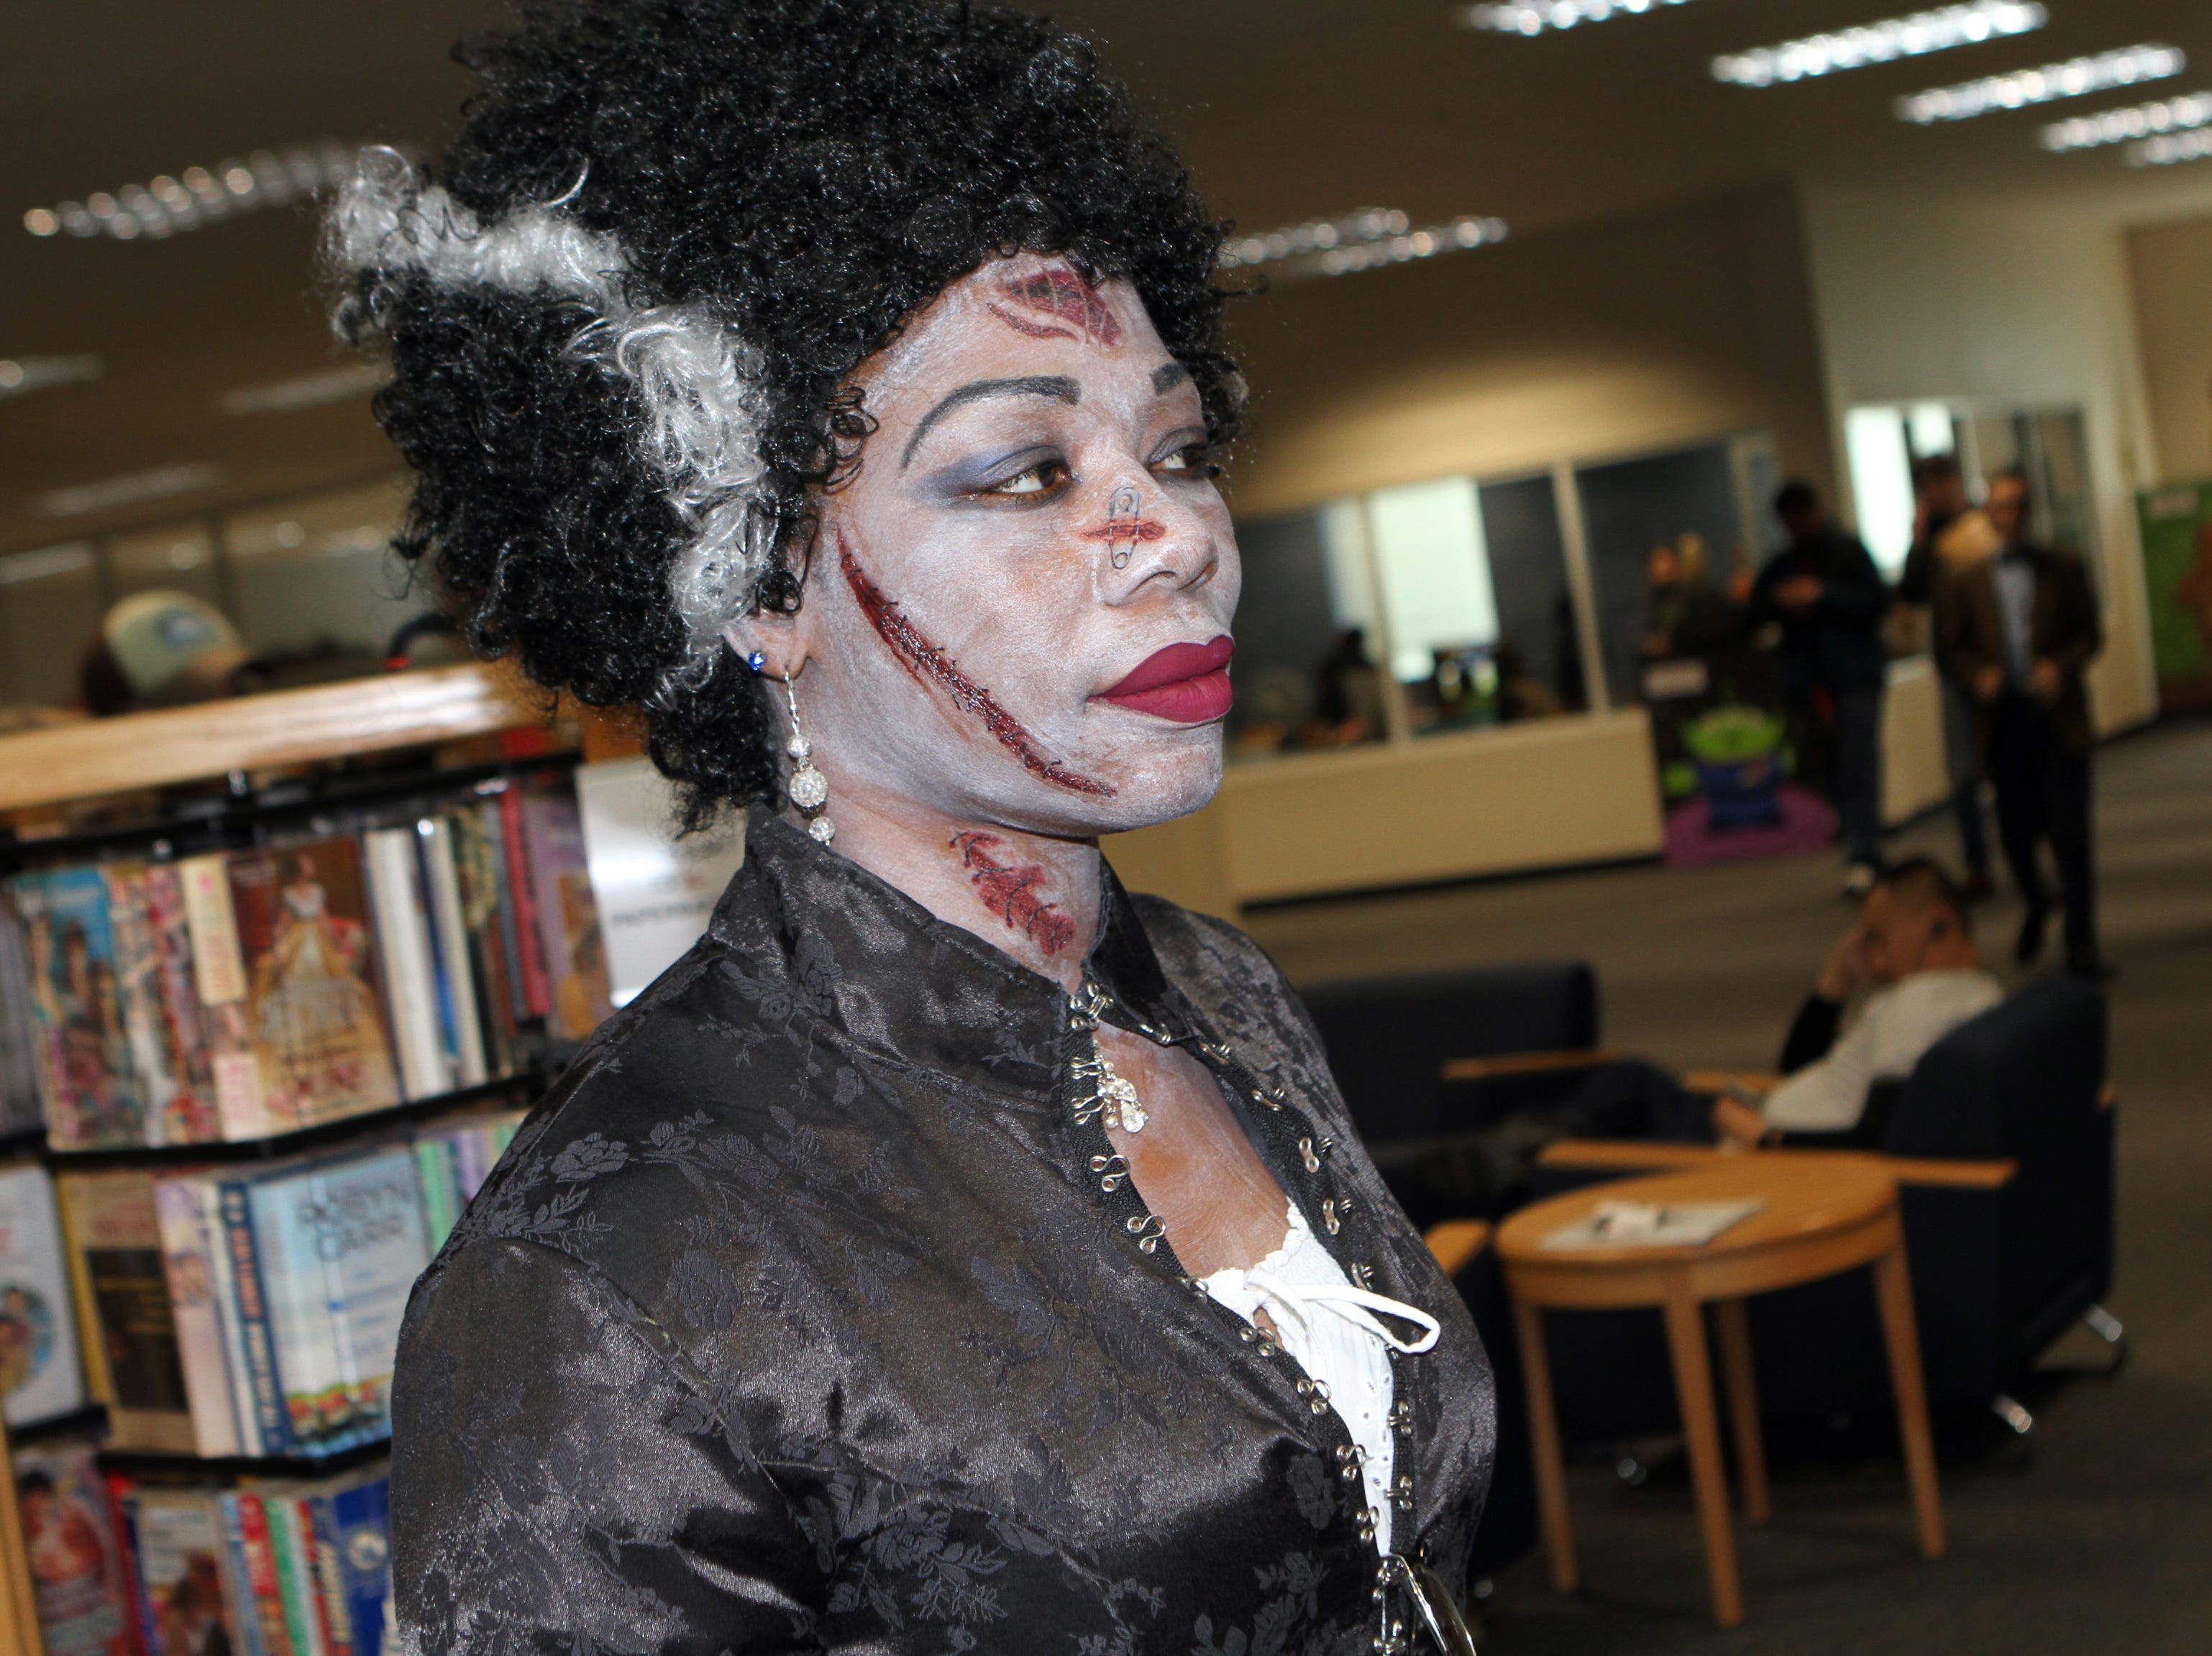 Kimberly Fleming as The Bride Of Frankenstein at CMC Public Library's annual Sci-Fi Expo on Saturday, November 3, 2018.